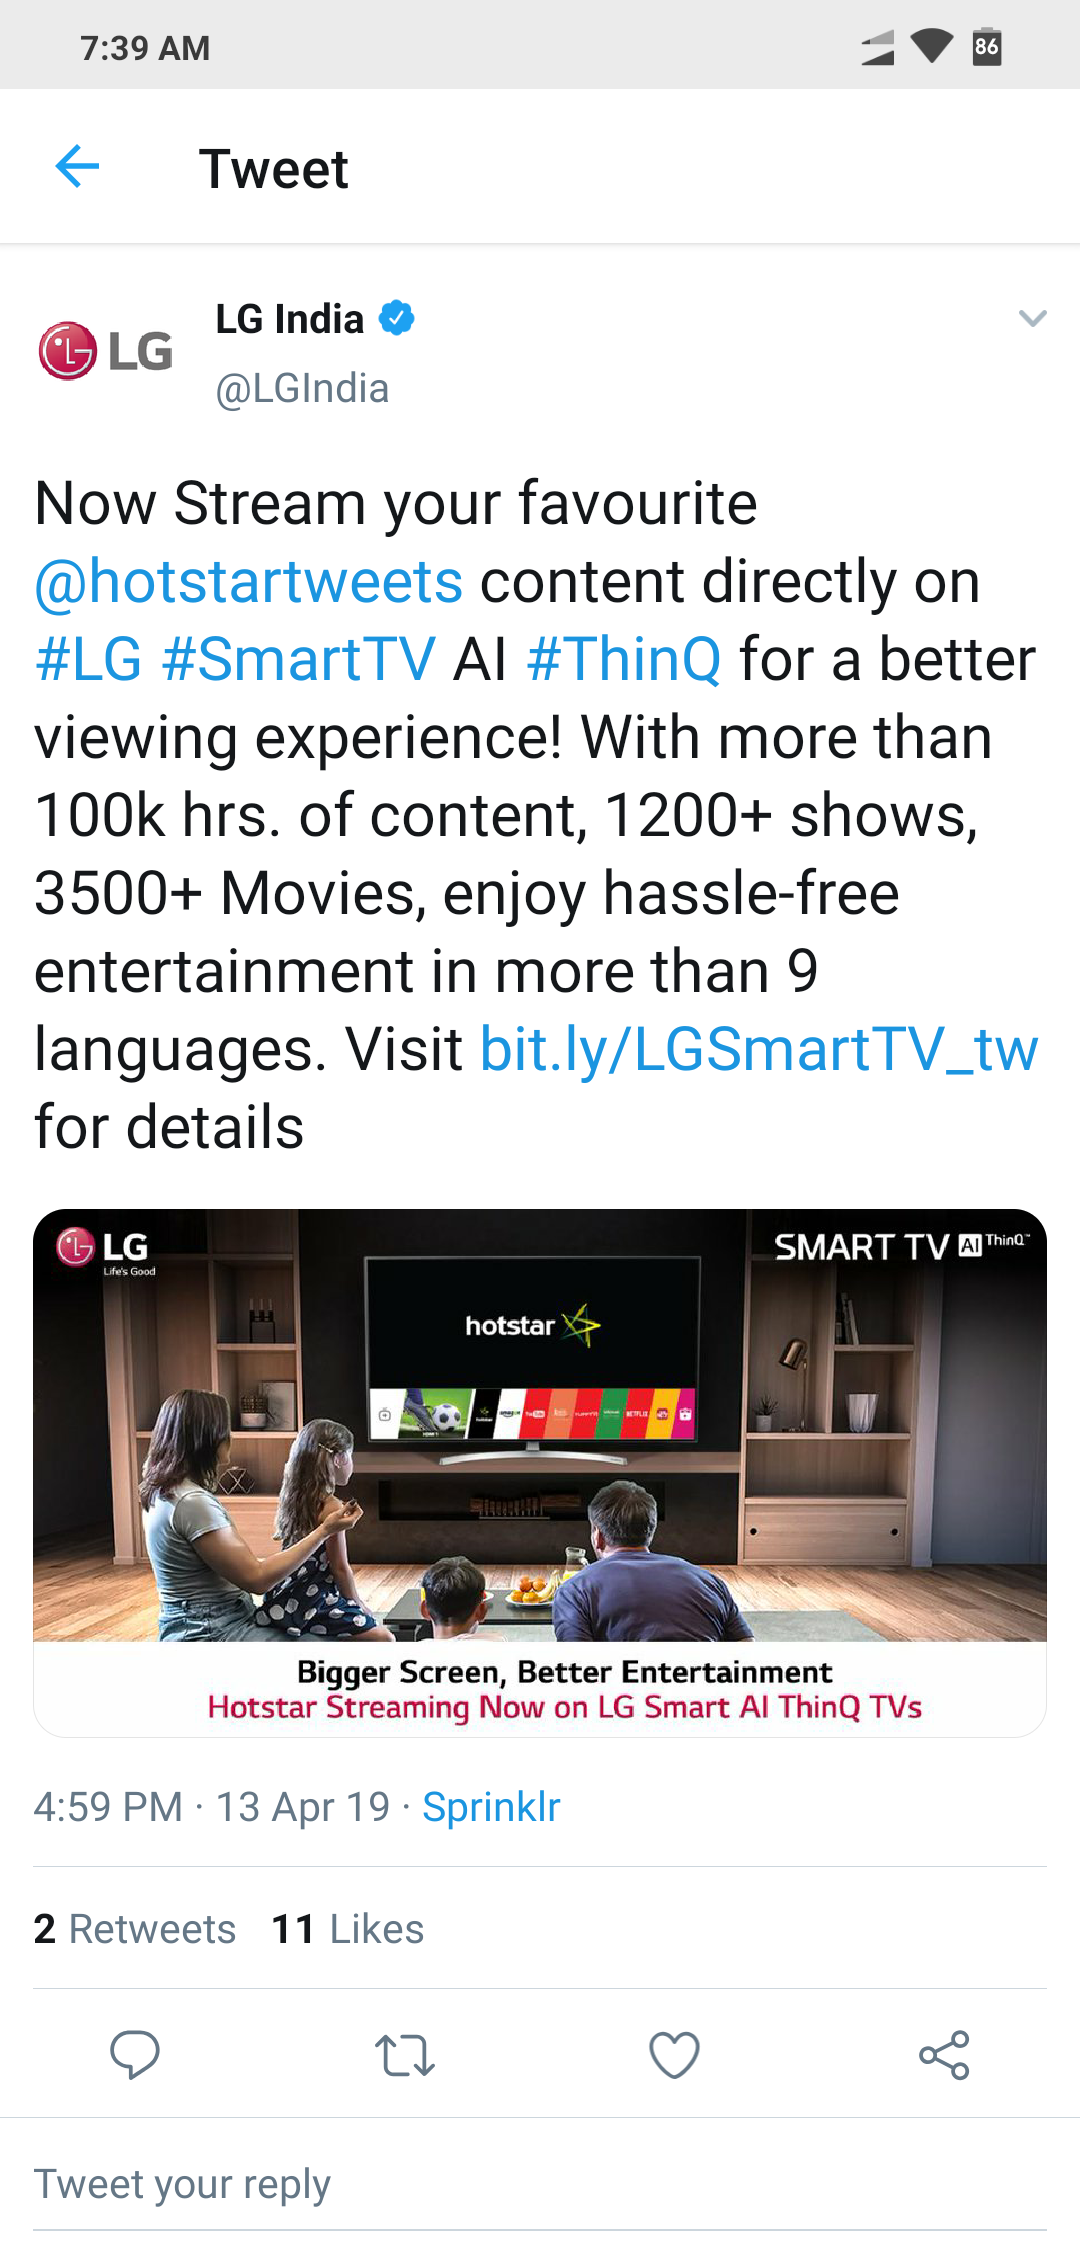 Hotstar App For India - Page 2 - LG webOS Smart TV Questions